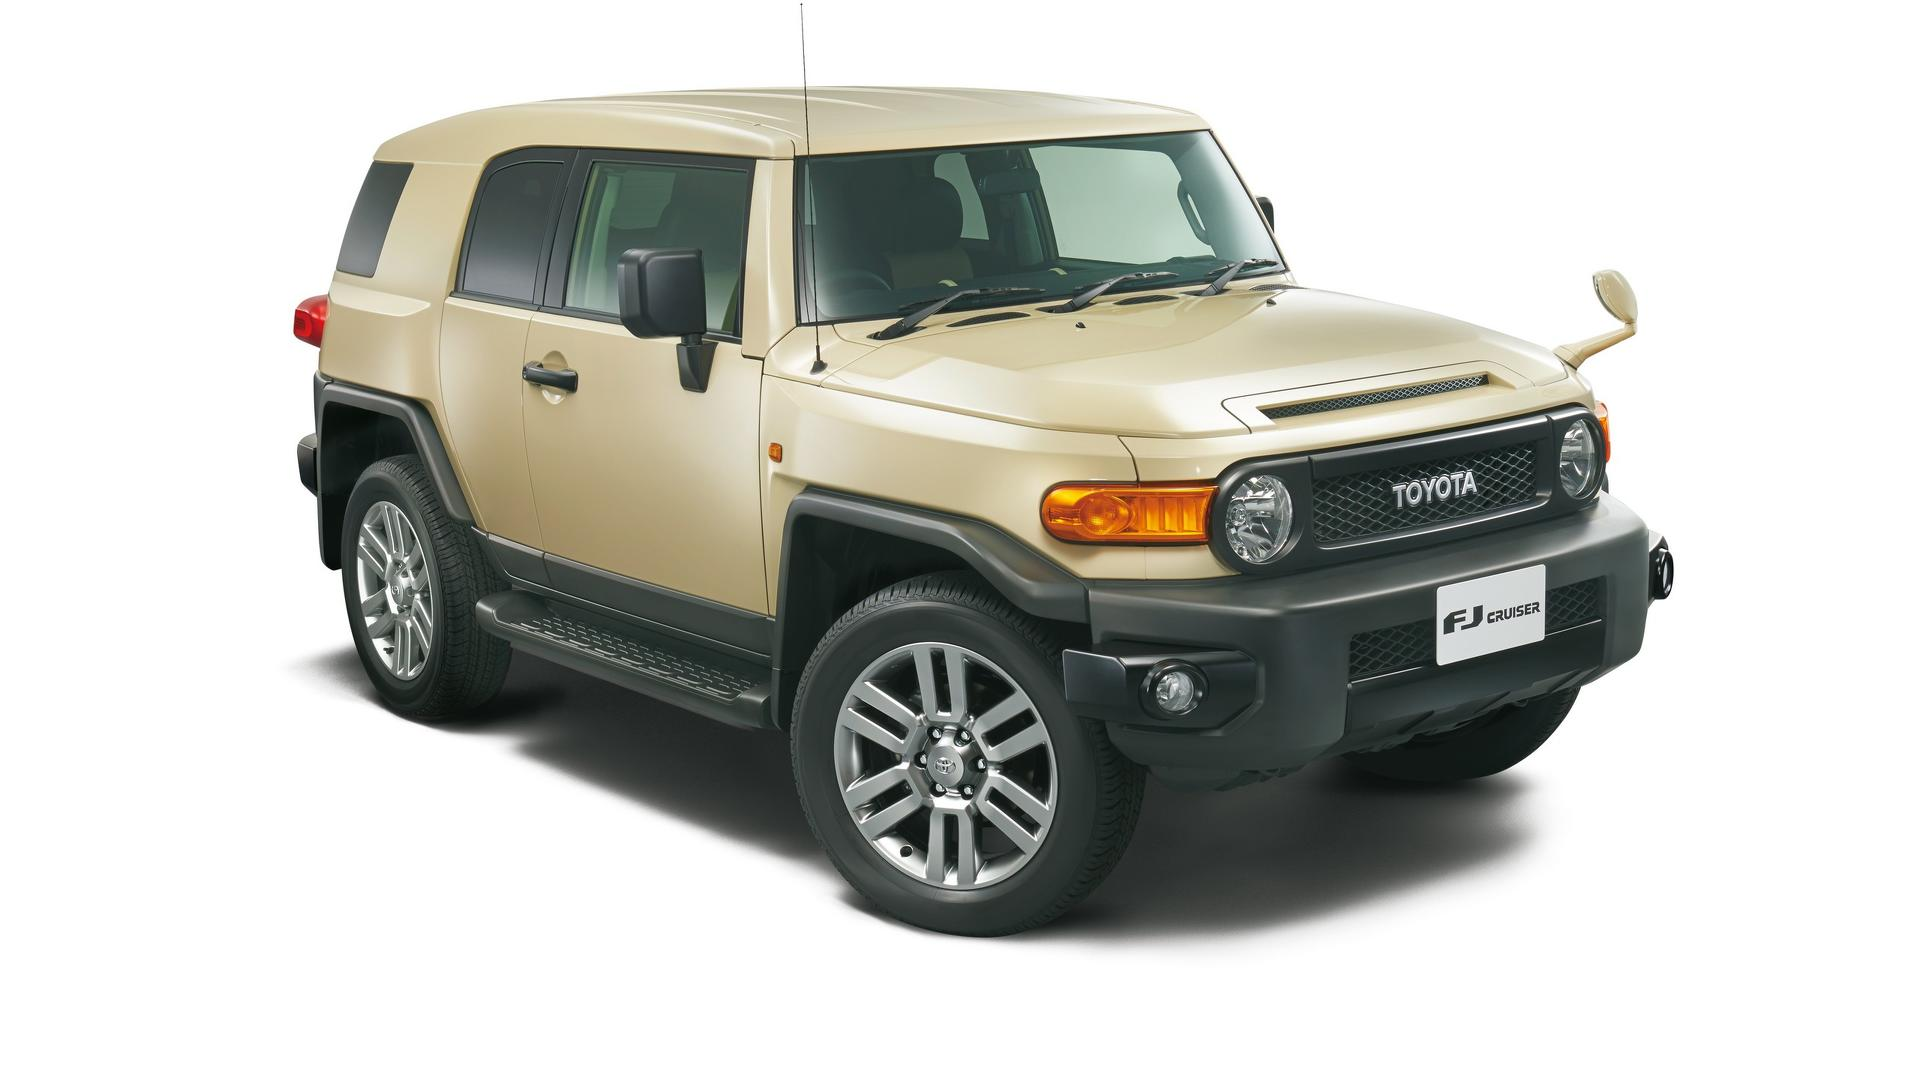 Fj Cruiser 2020 >> Toyota says goodbye to the FJ Cruiser with this Final Edition